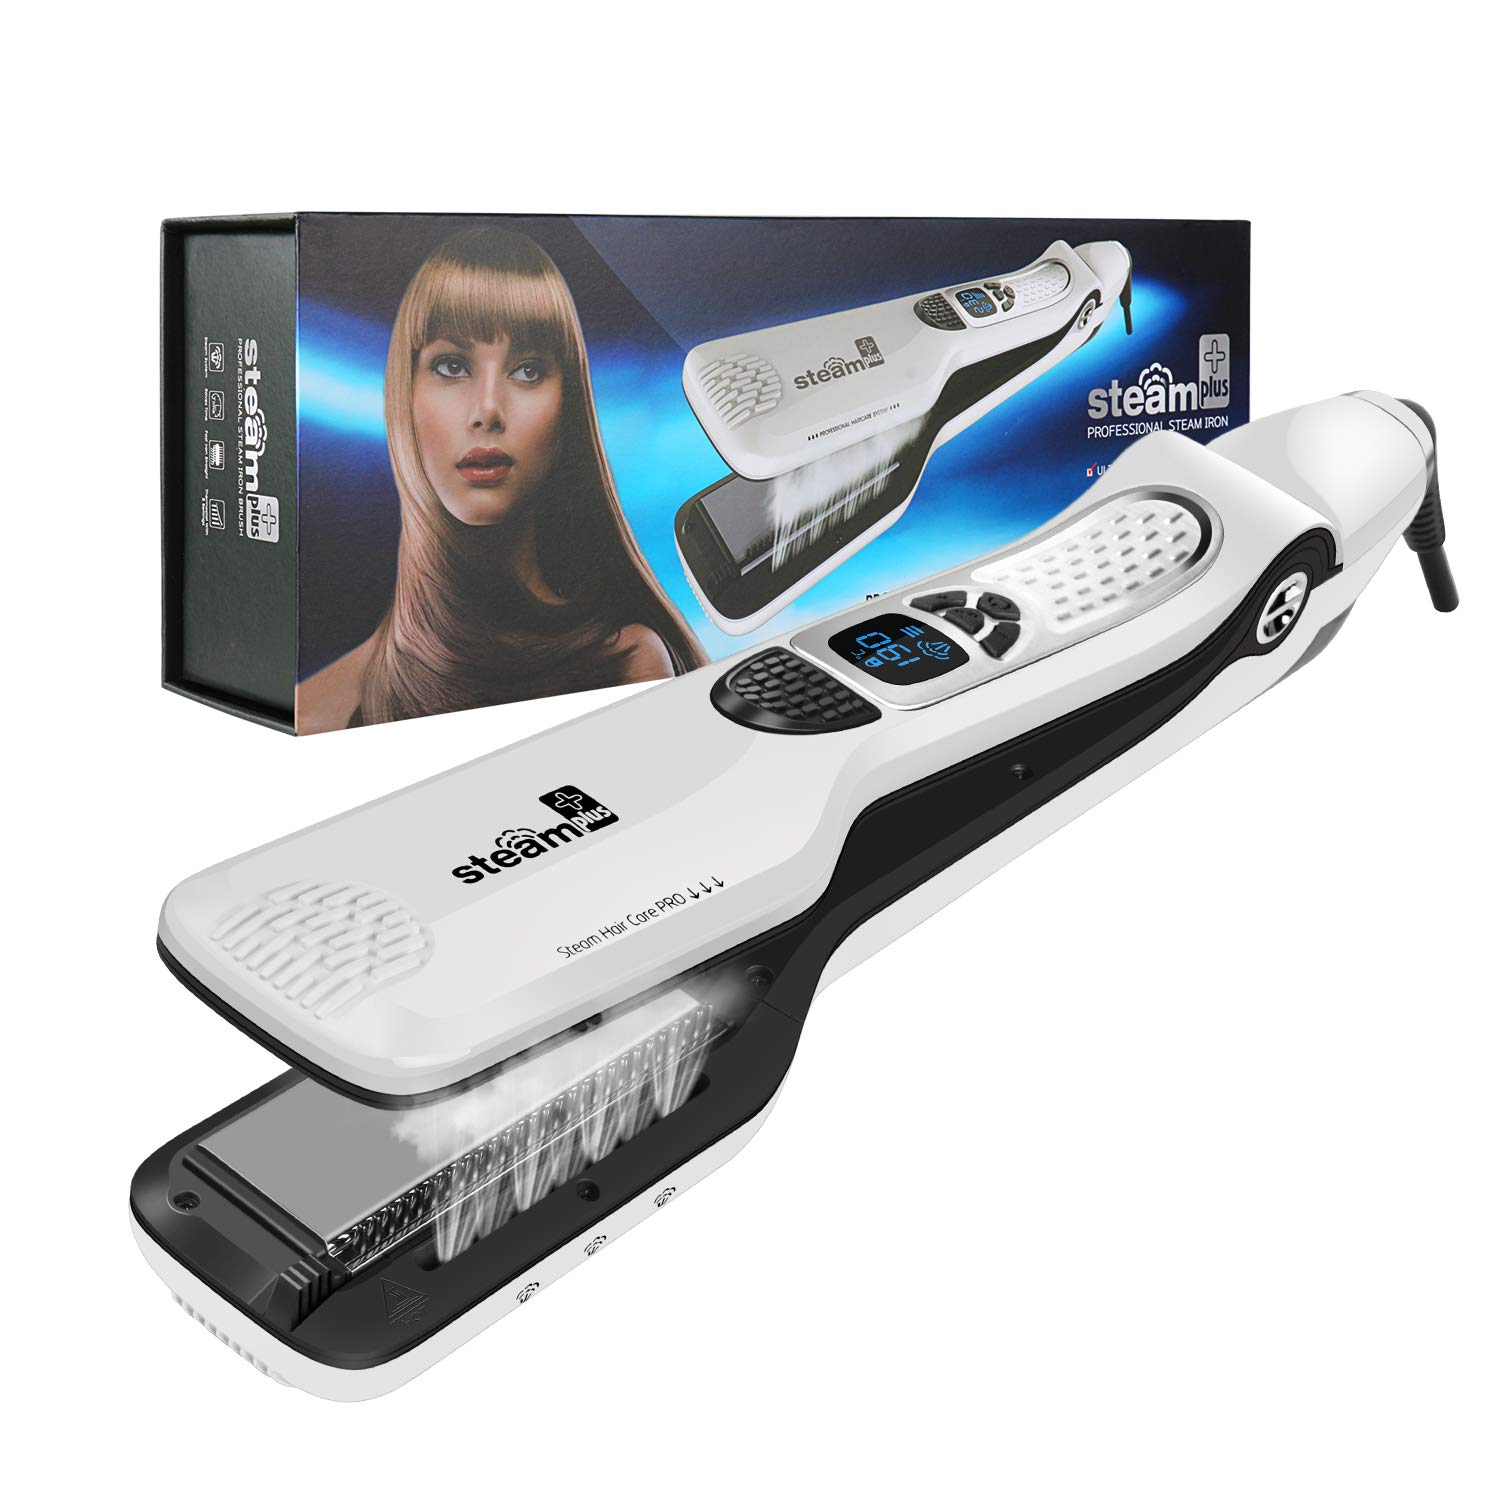 MKBOO Hair Straightener Salon Professional Nano Titanium Ceramic Steam Flat Iron for Hair Styler with Removable Comb Digital LCD 5 Level Adjustable Temperature Curling Iron for All Hair Type-White